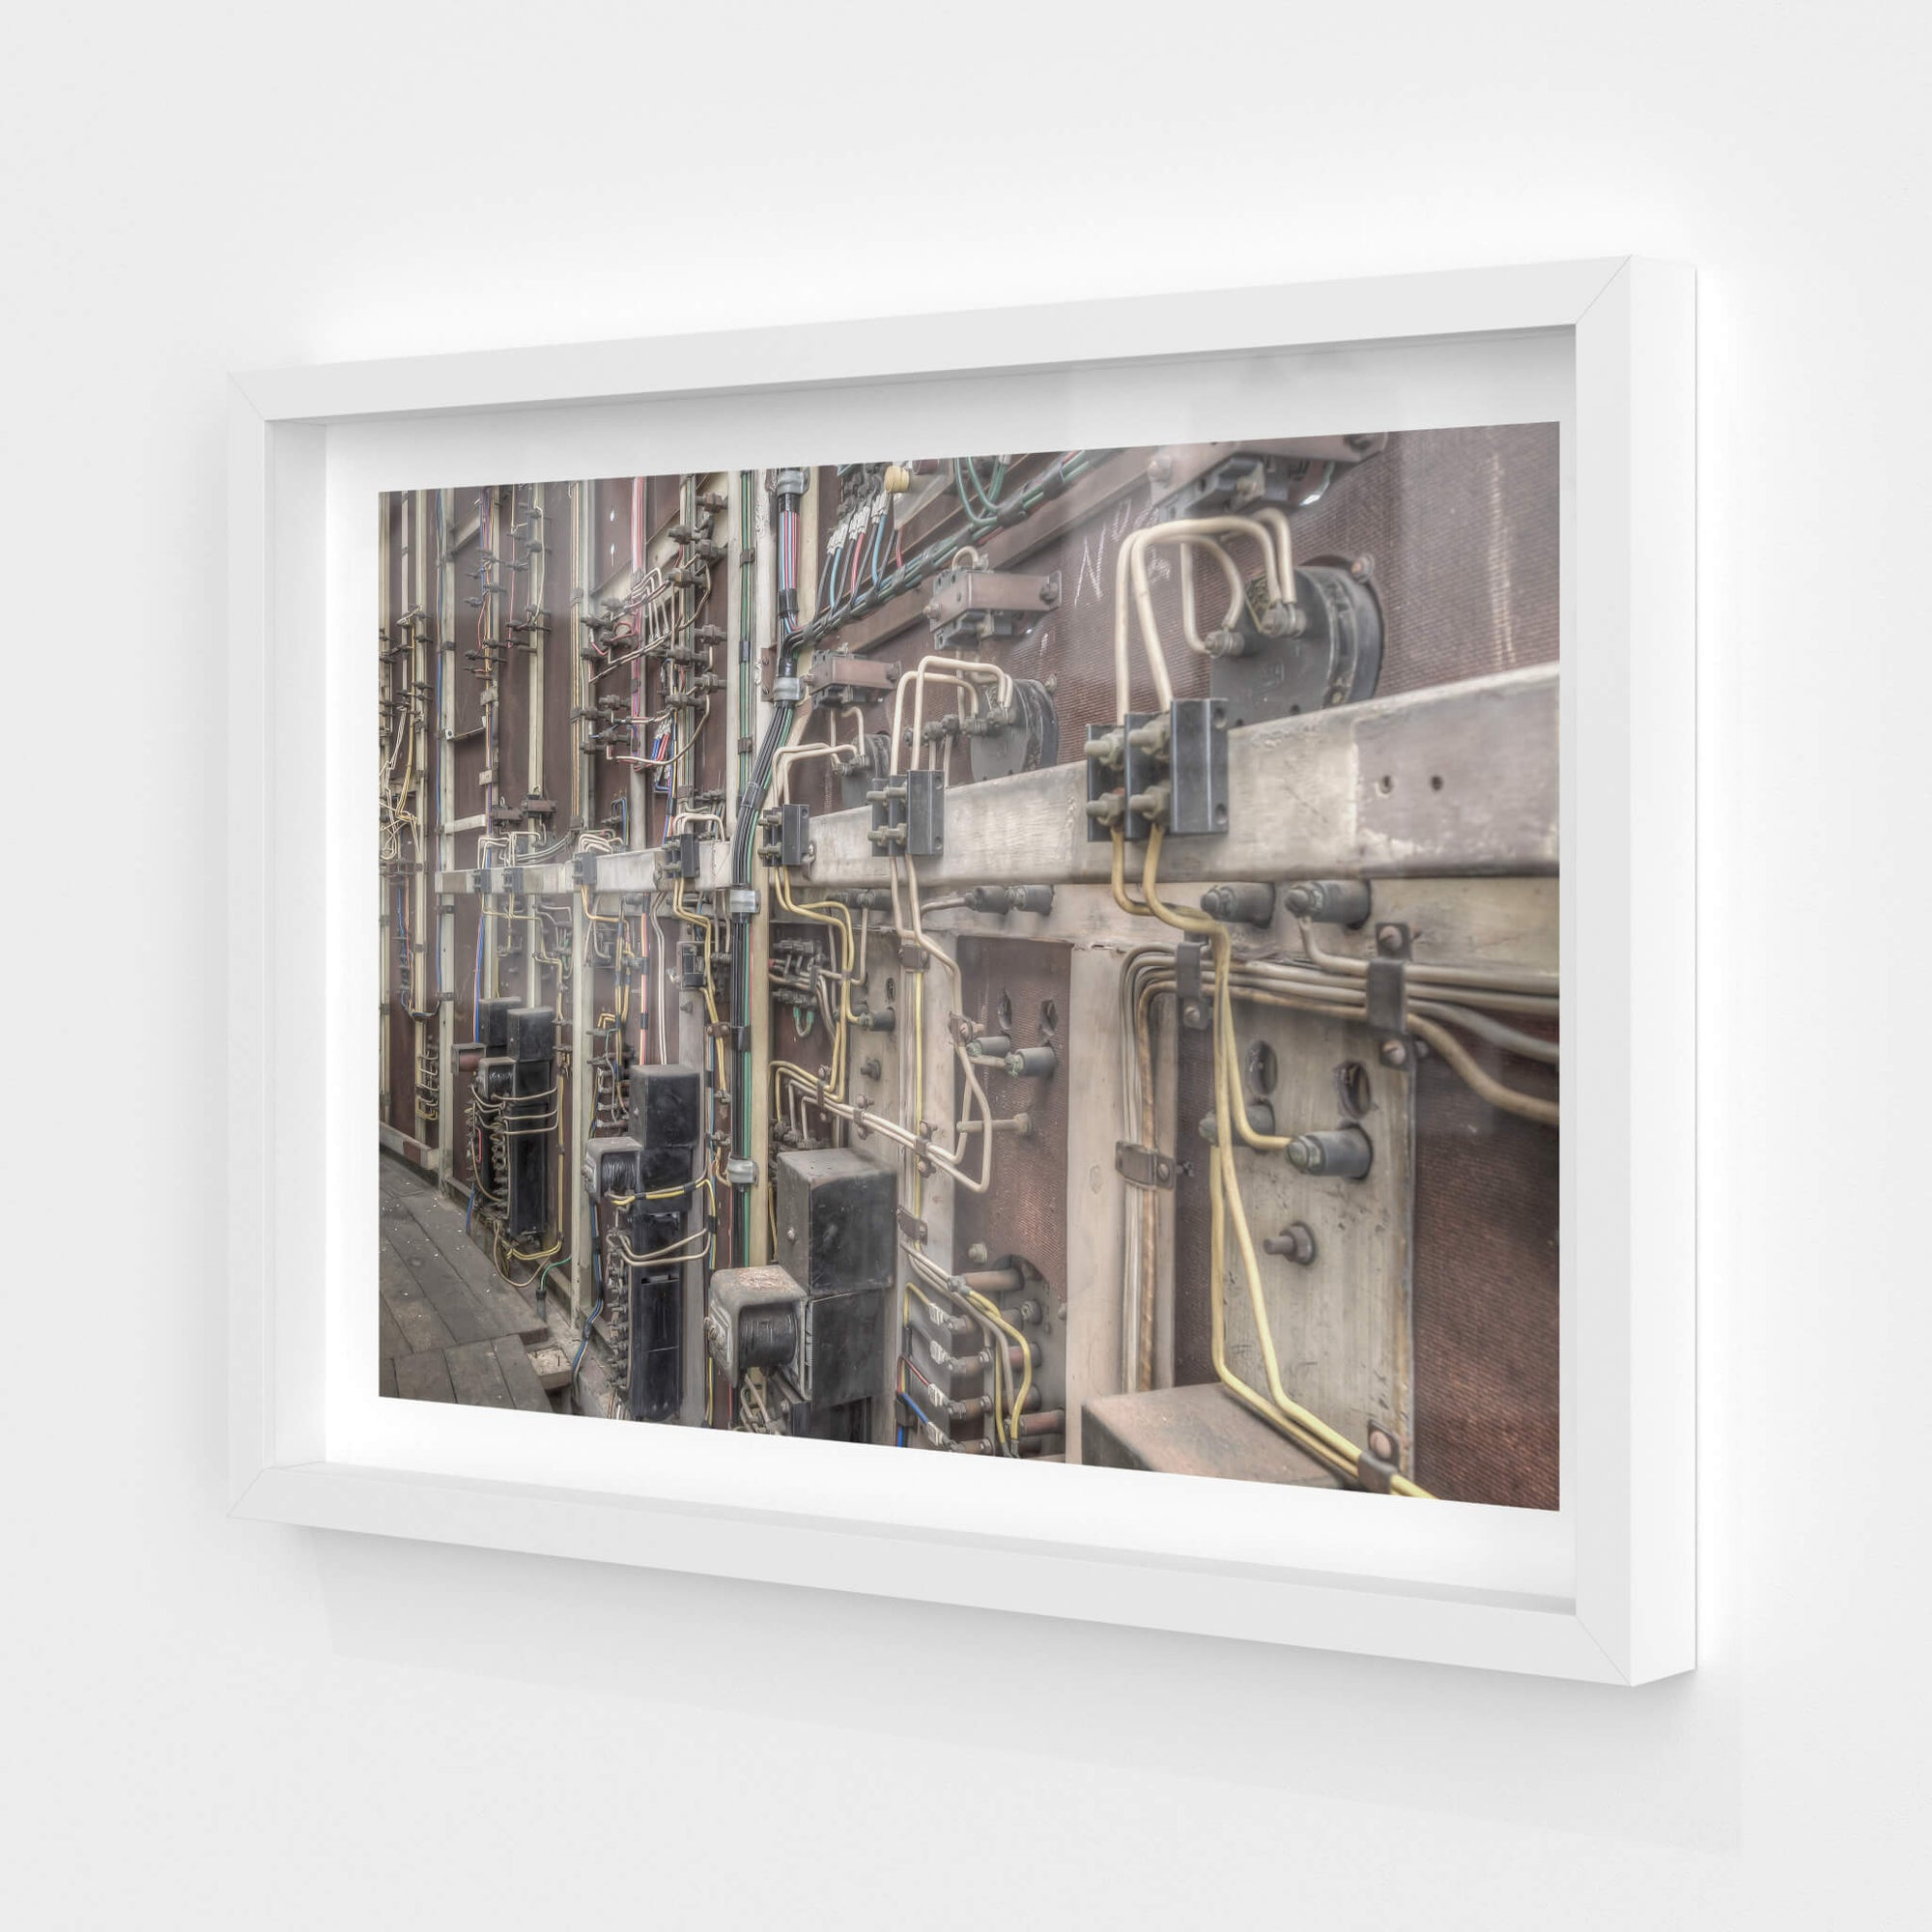 Control Room Wiring | White Bay Power Station Fine Art Print - Lost Collective Shop